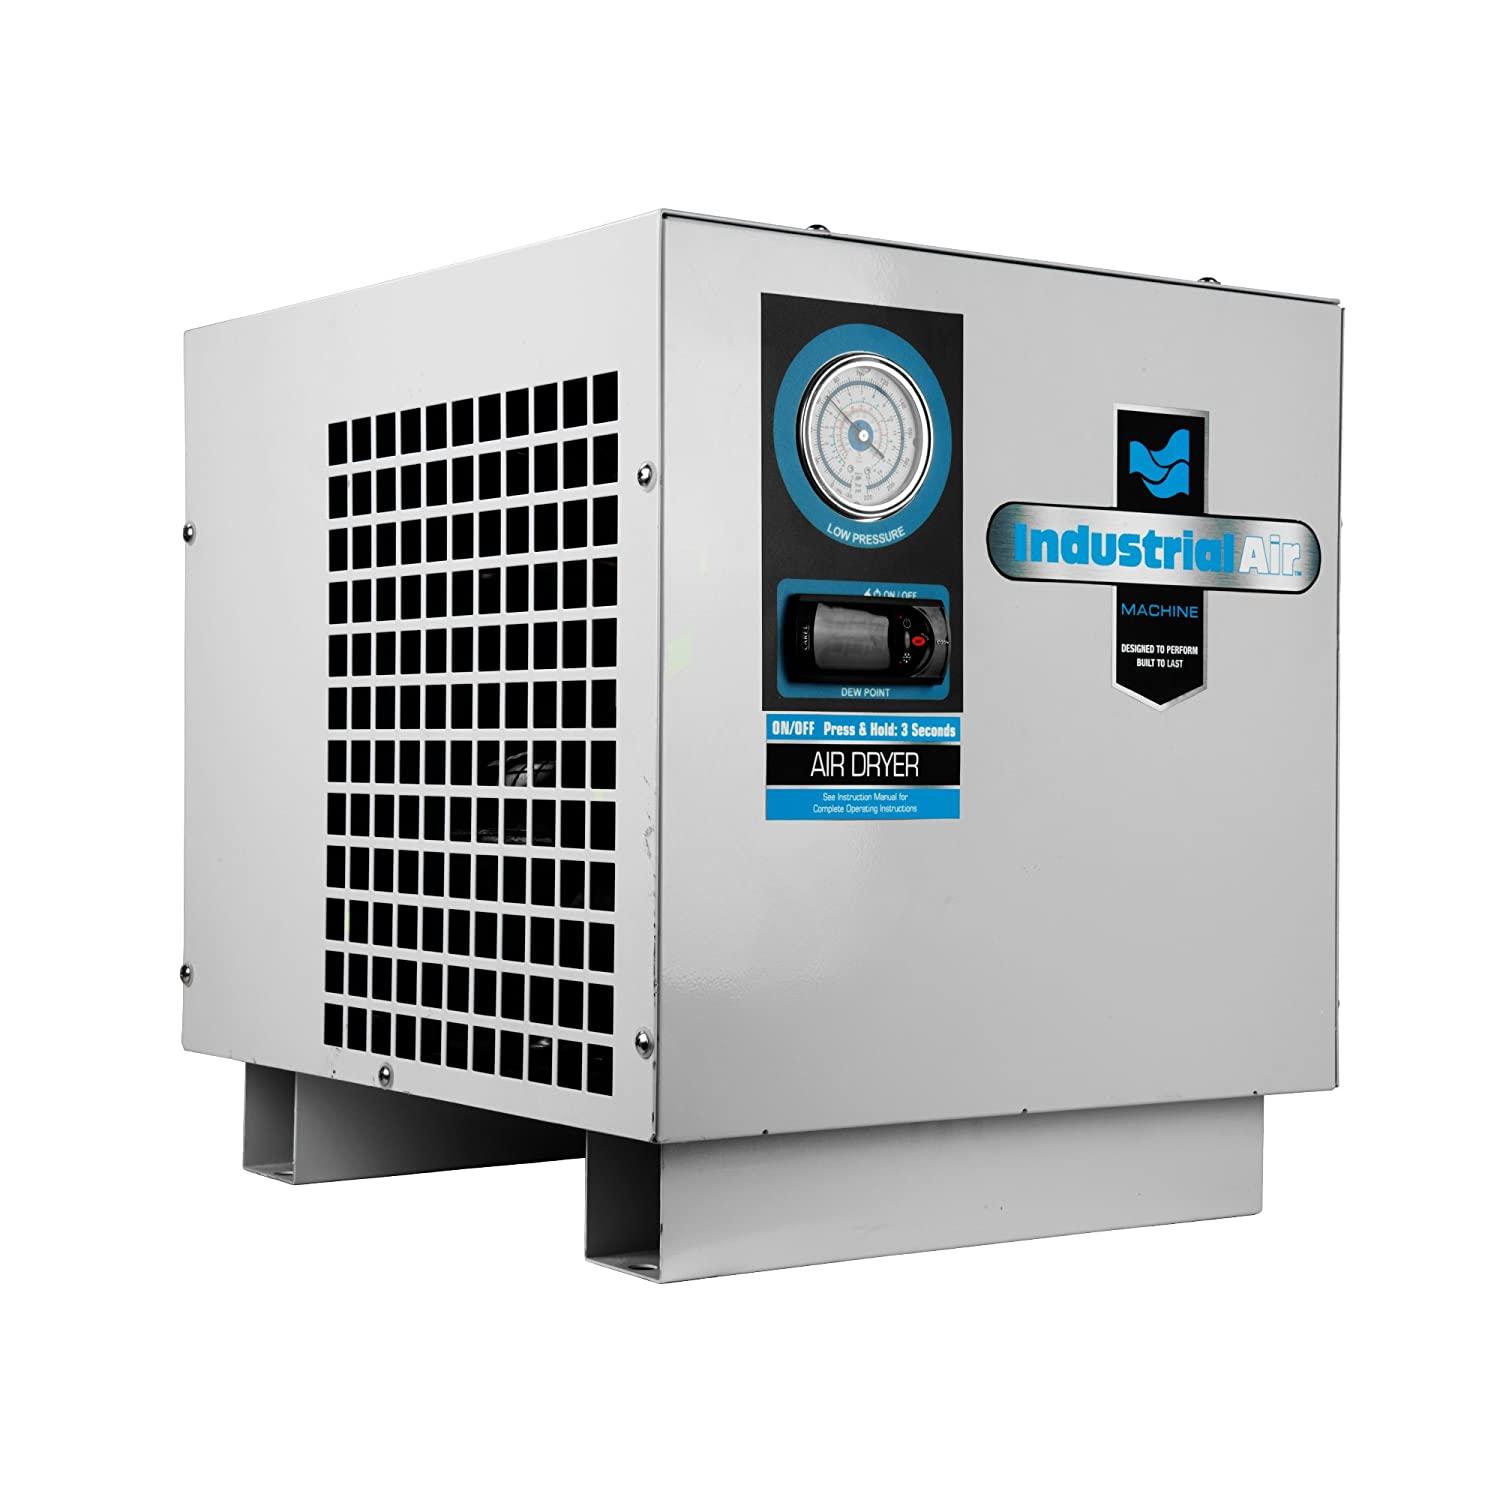 Amazon.com: Industrial Air IAD30 7.5 hp 27.6 SCFM Non-Cycling Refrigerated Air Dryer: Home Improvement